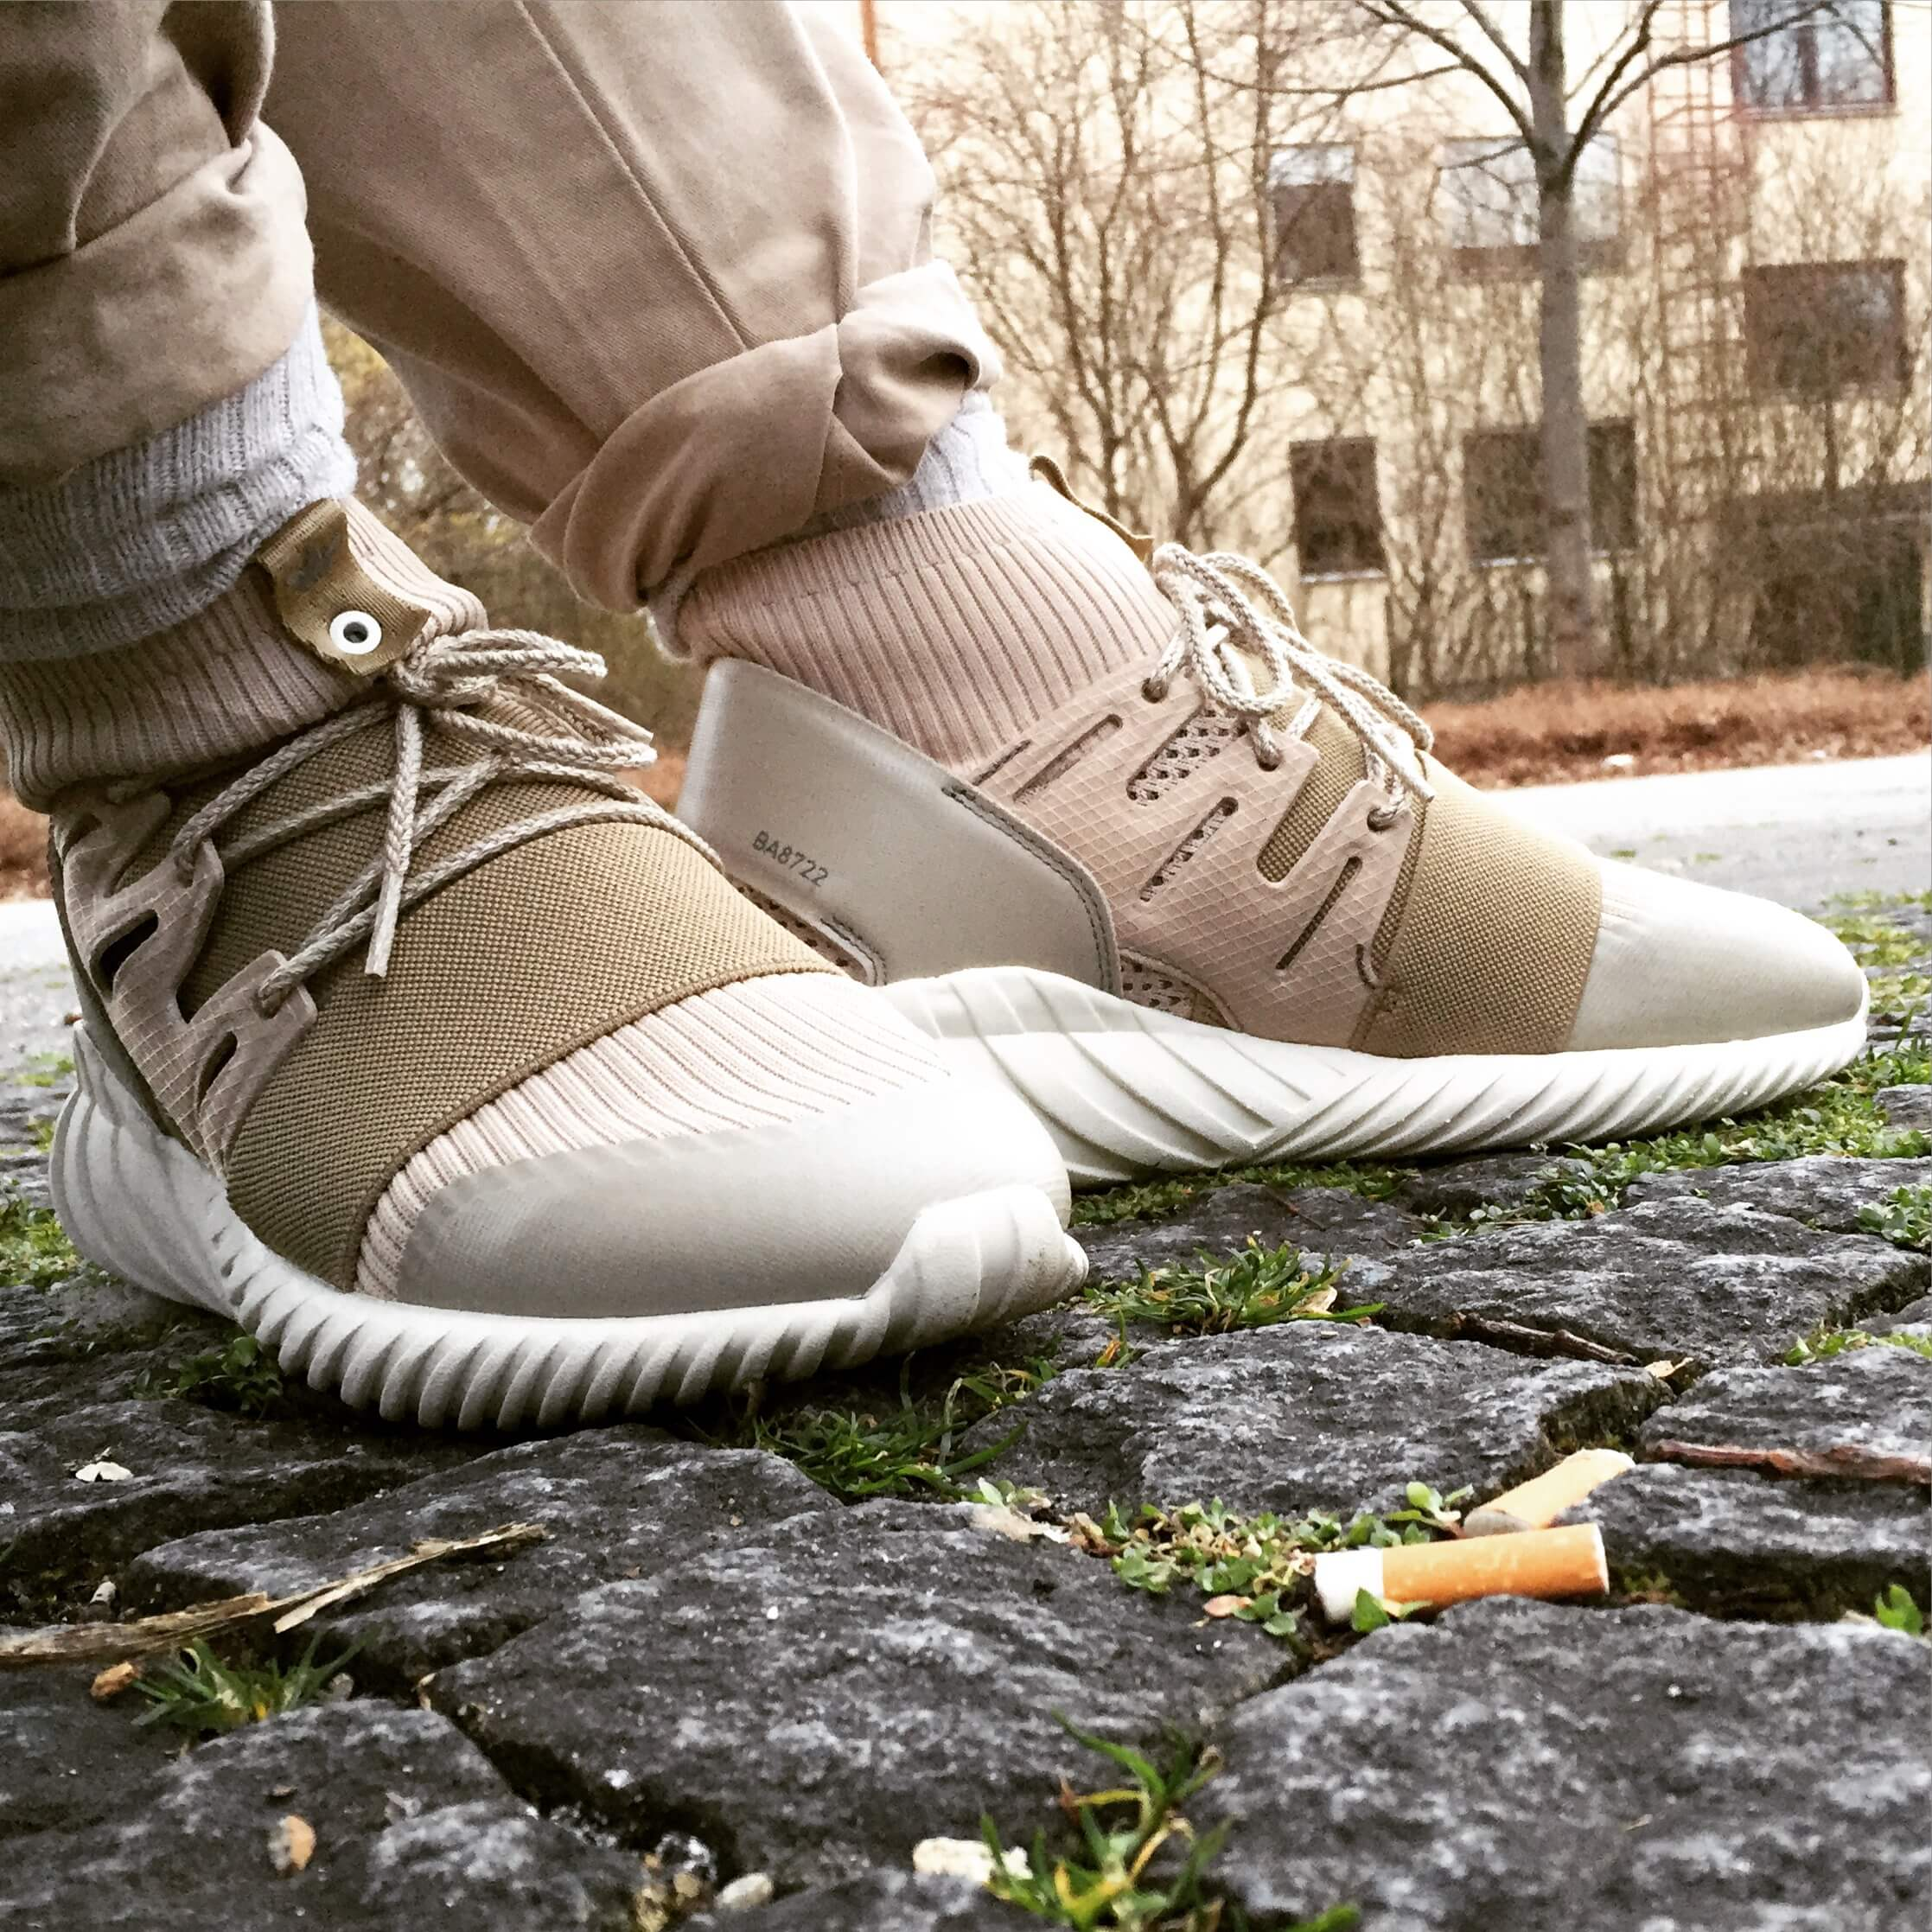 Adidas-Tubular-Doom-Special-Forces-Angle-View-Benstah-Onfeet